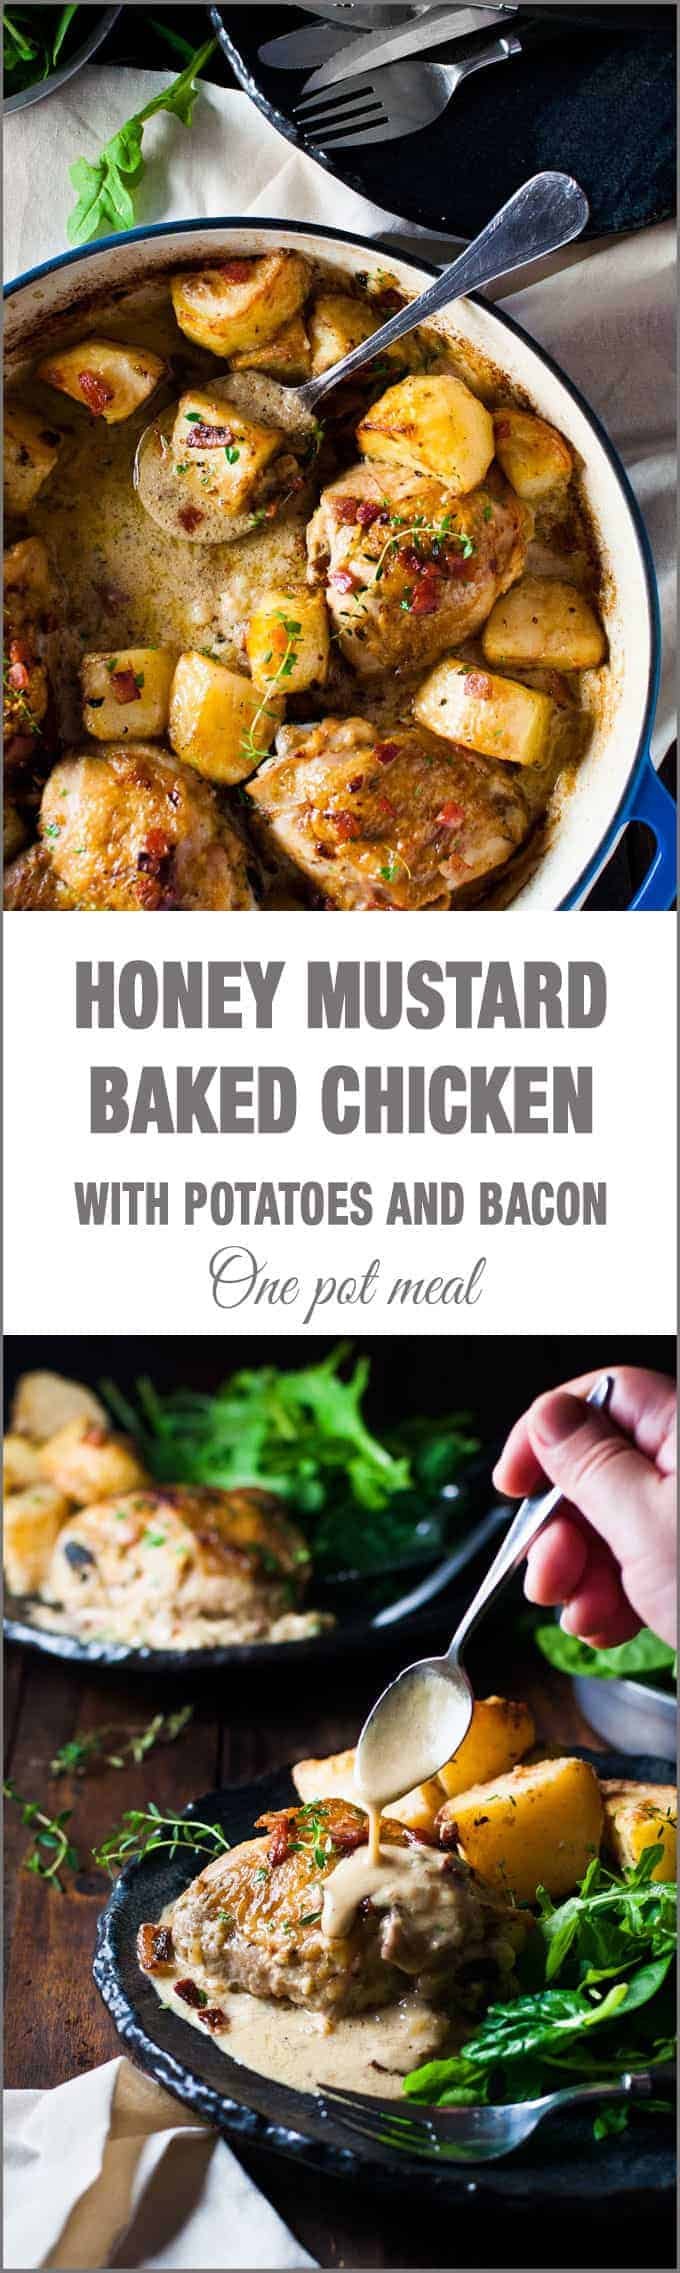 Honey Mustard Baked Chicken With Roast Potatoes And Bacon All Made In One Pan